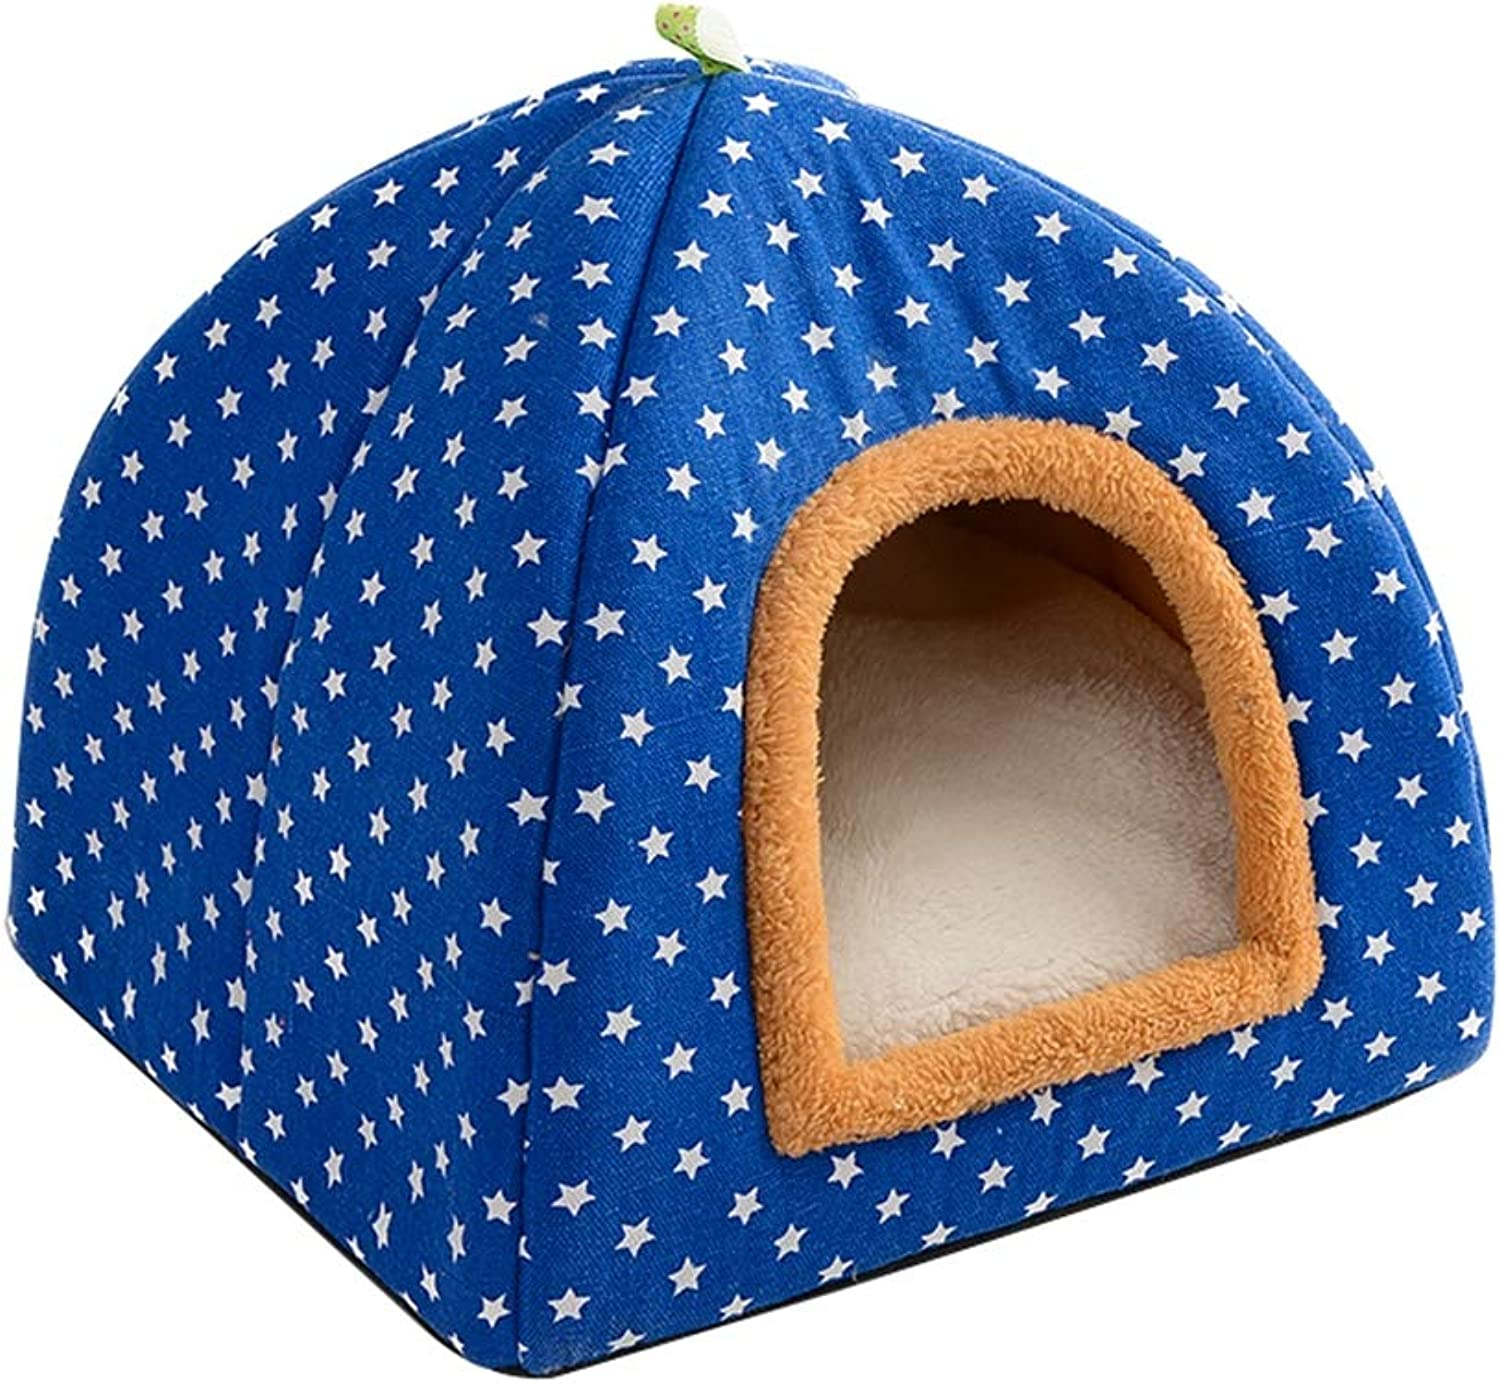 Pet Kennel with a Ring cat Kitten cat Litter Puppy Small Dog House,bluee,S